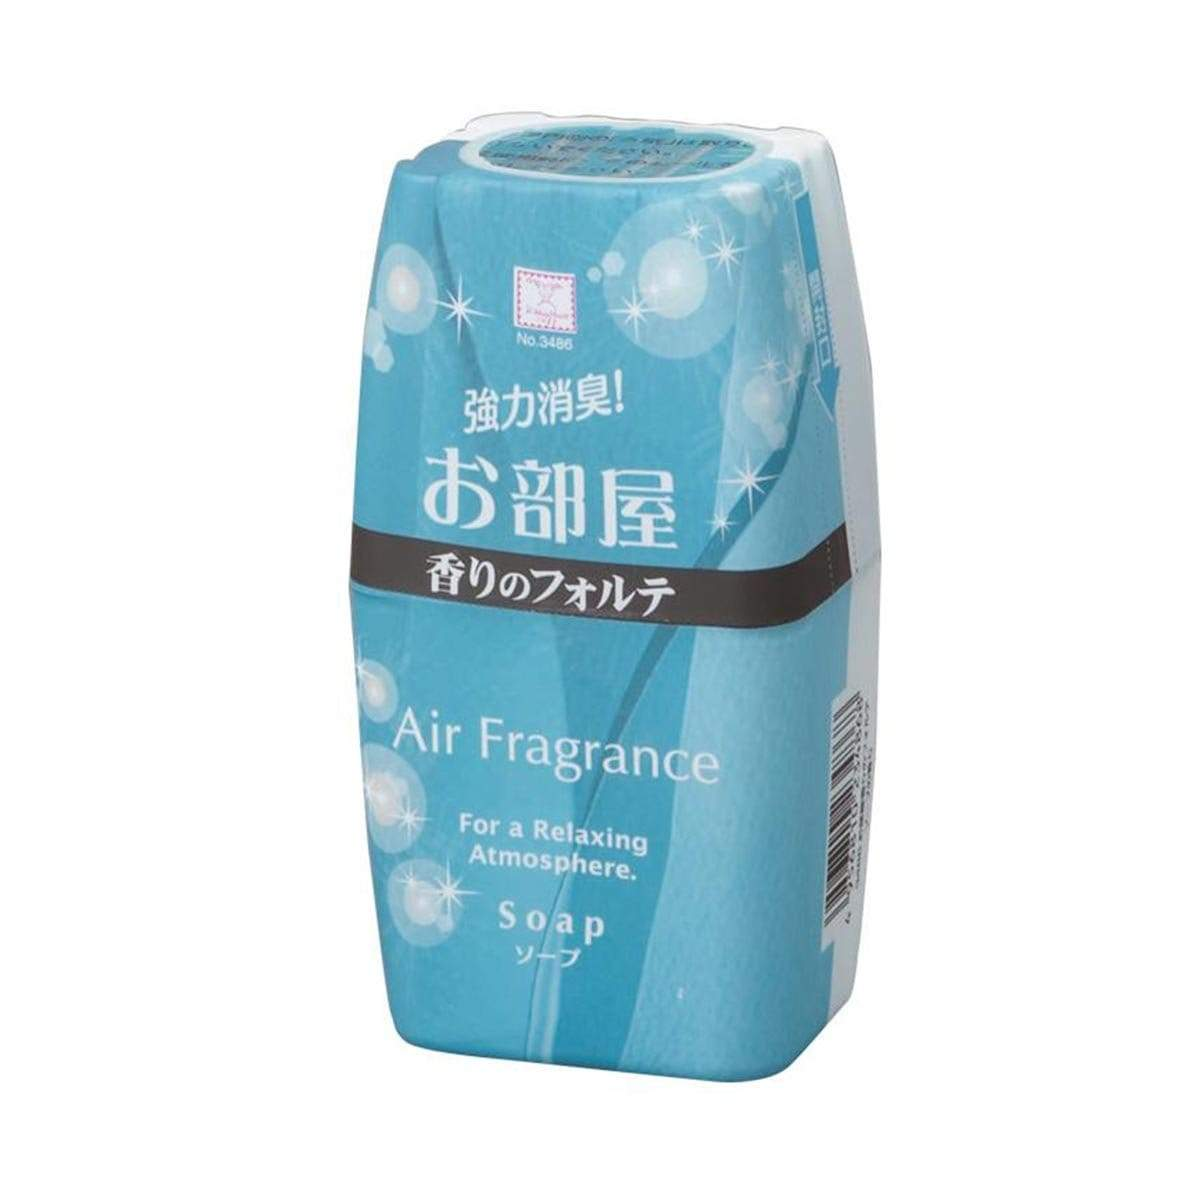 Japanese Deodorant For Room Scented Soap